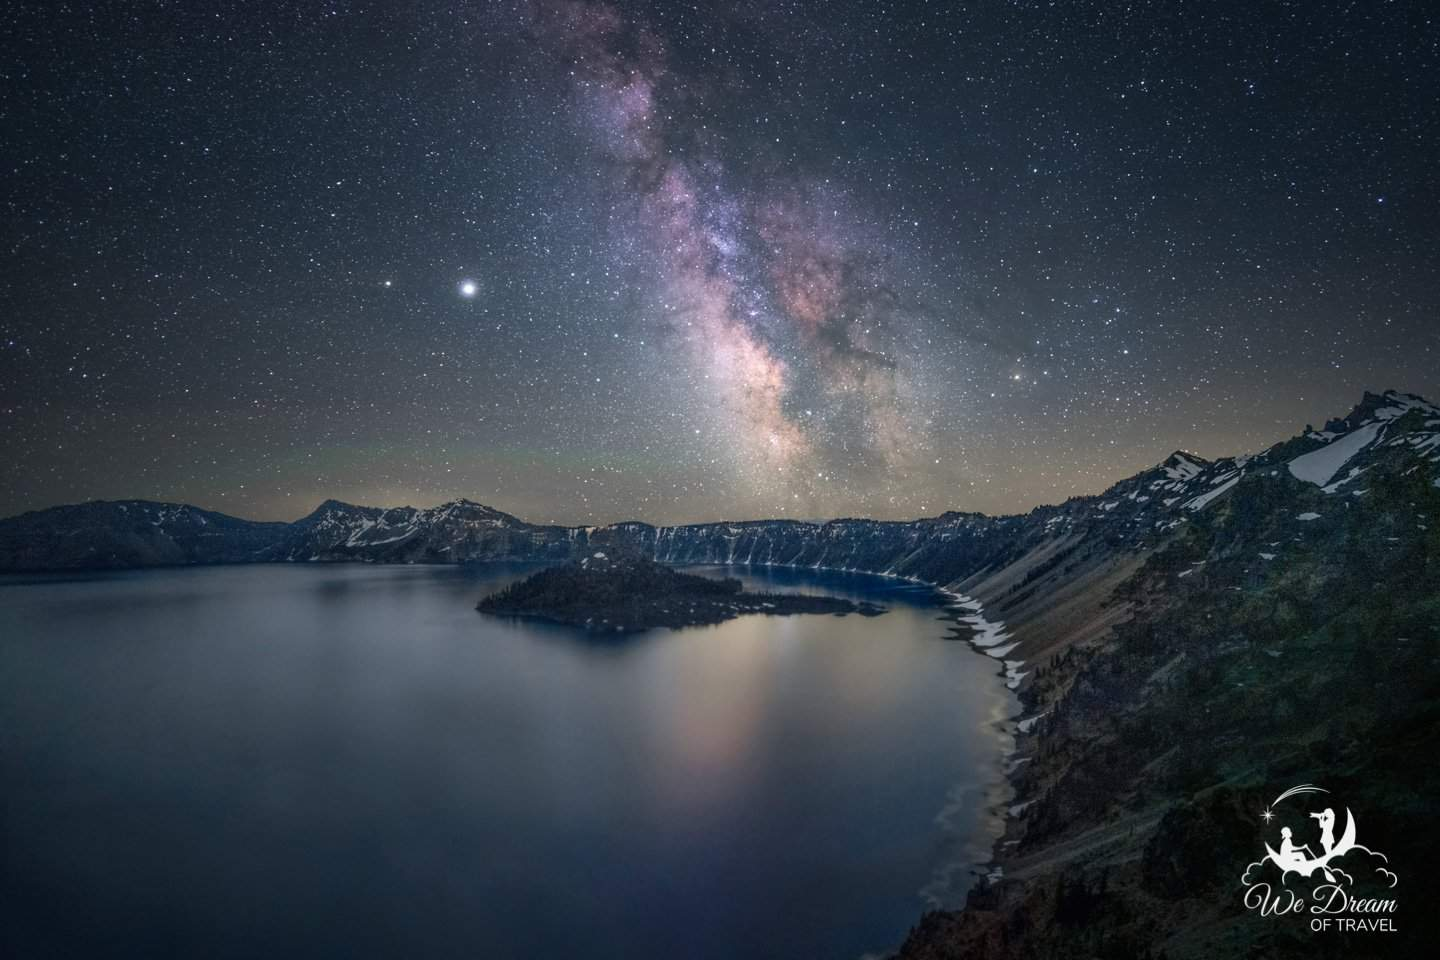 The most photographed place to visit in Oregon for Milky Way photography is Crater Lake.